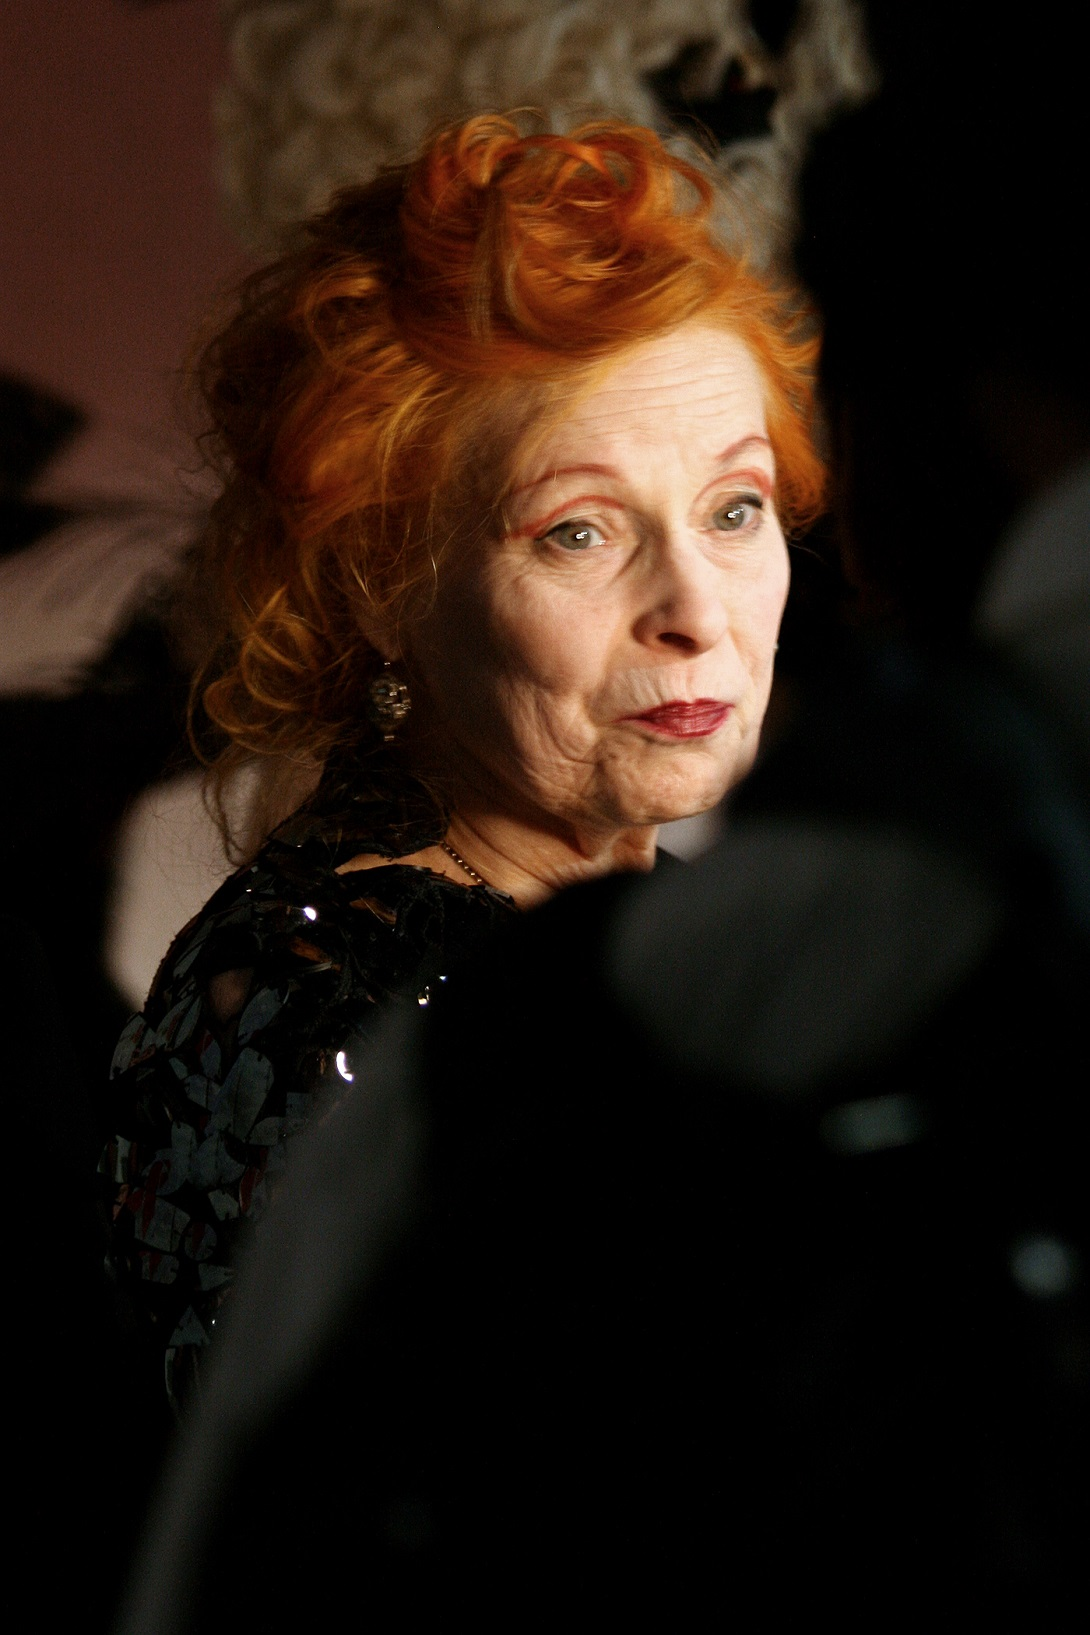 Vivienne Westwood, Life Ball, 2011 via Wikimedia Commons